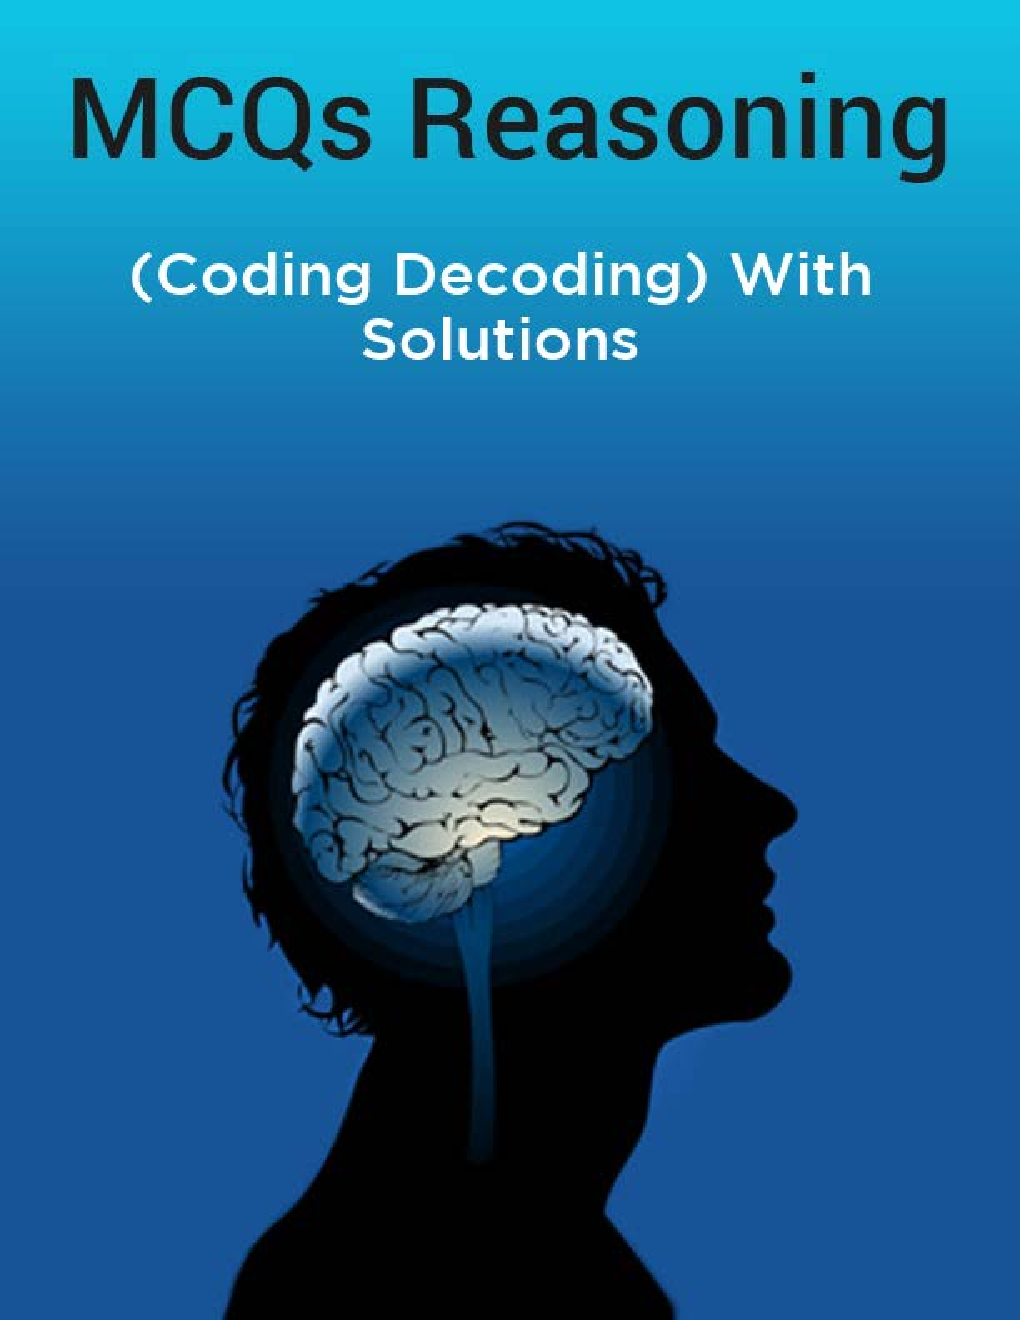 MCQs Reasoning (Coding Decoding) With Solutions - Page 1